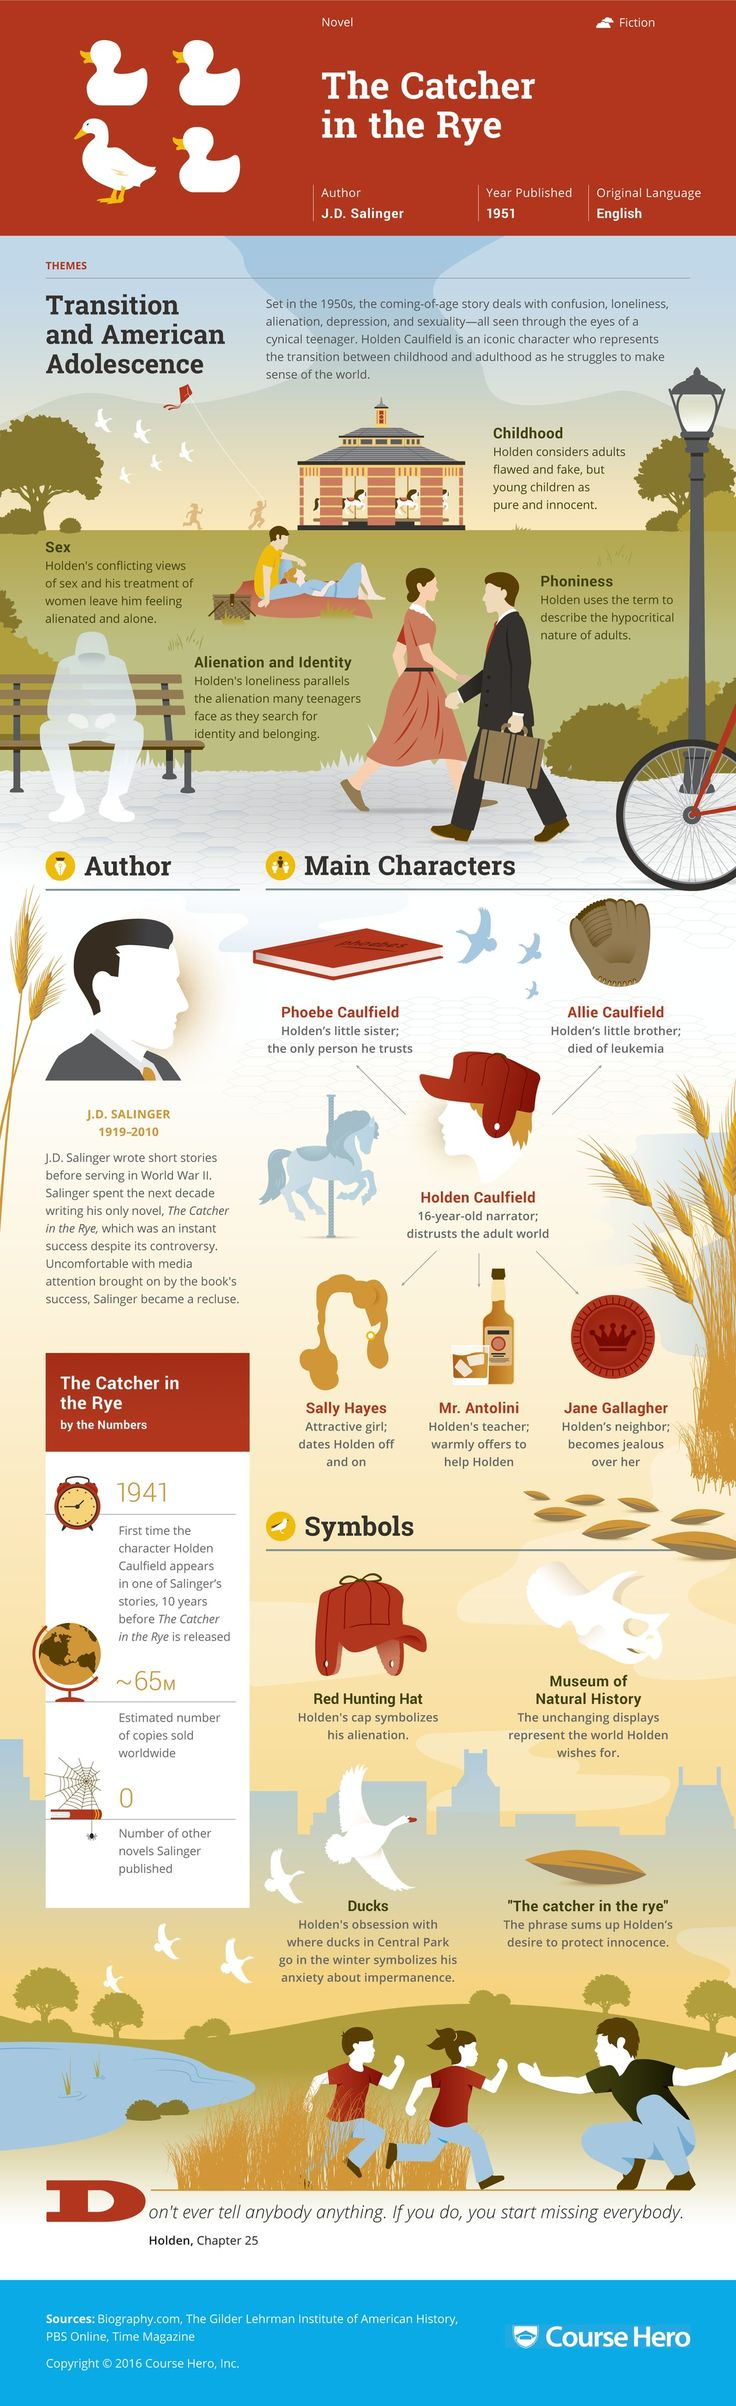 best ideas about american literature history of study guide for j d salinger s the catcher in the rye including chapter summary character analysis and more learn all about the catcher in the rye